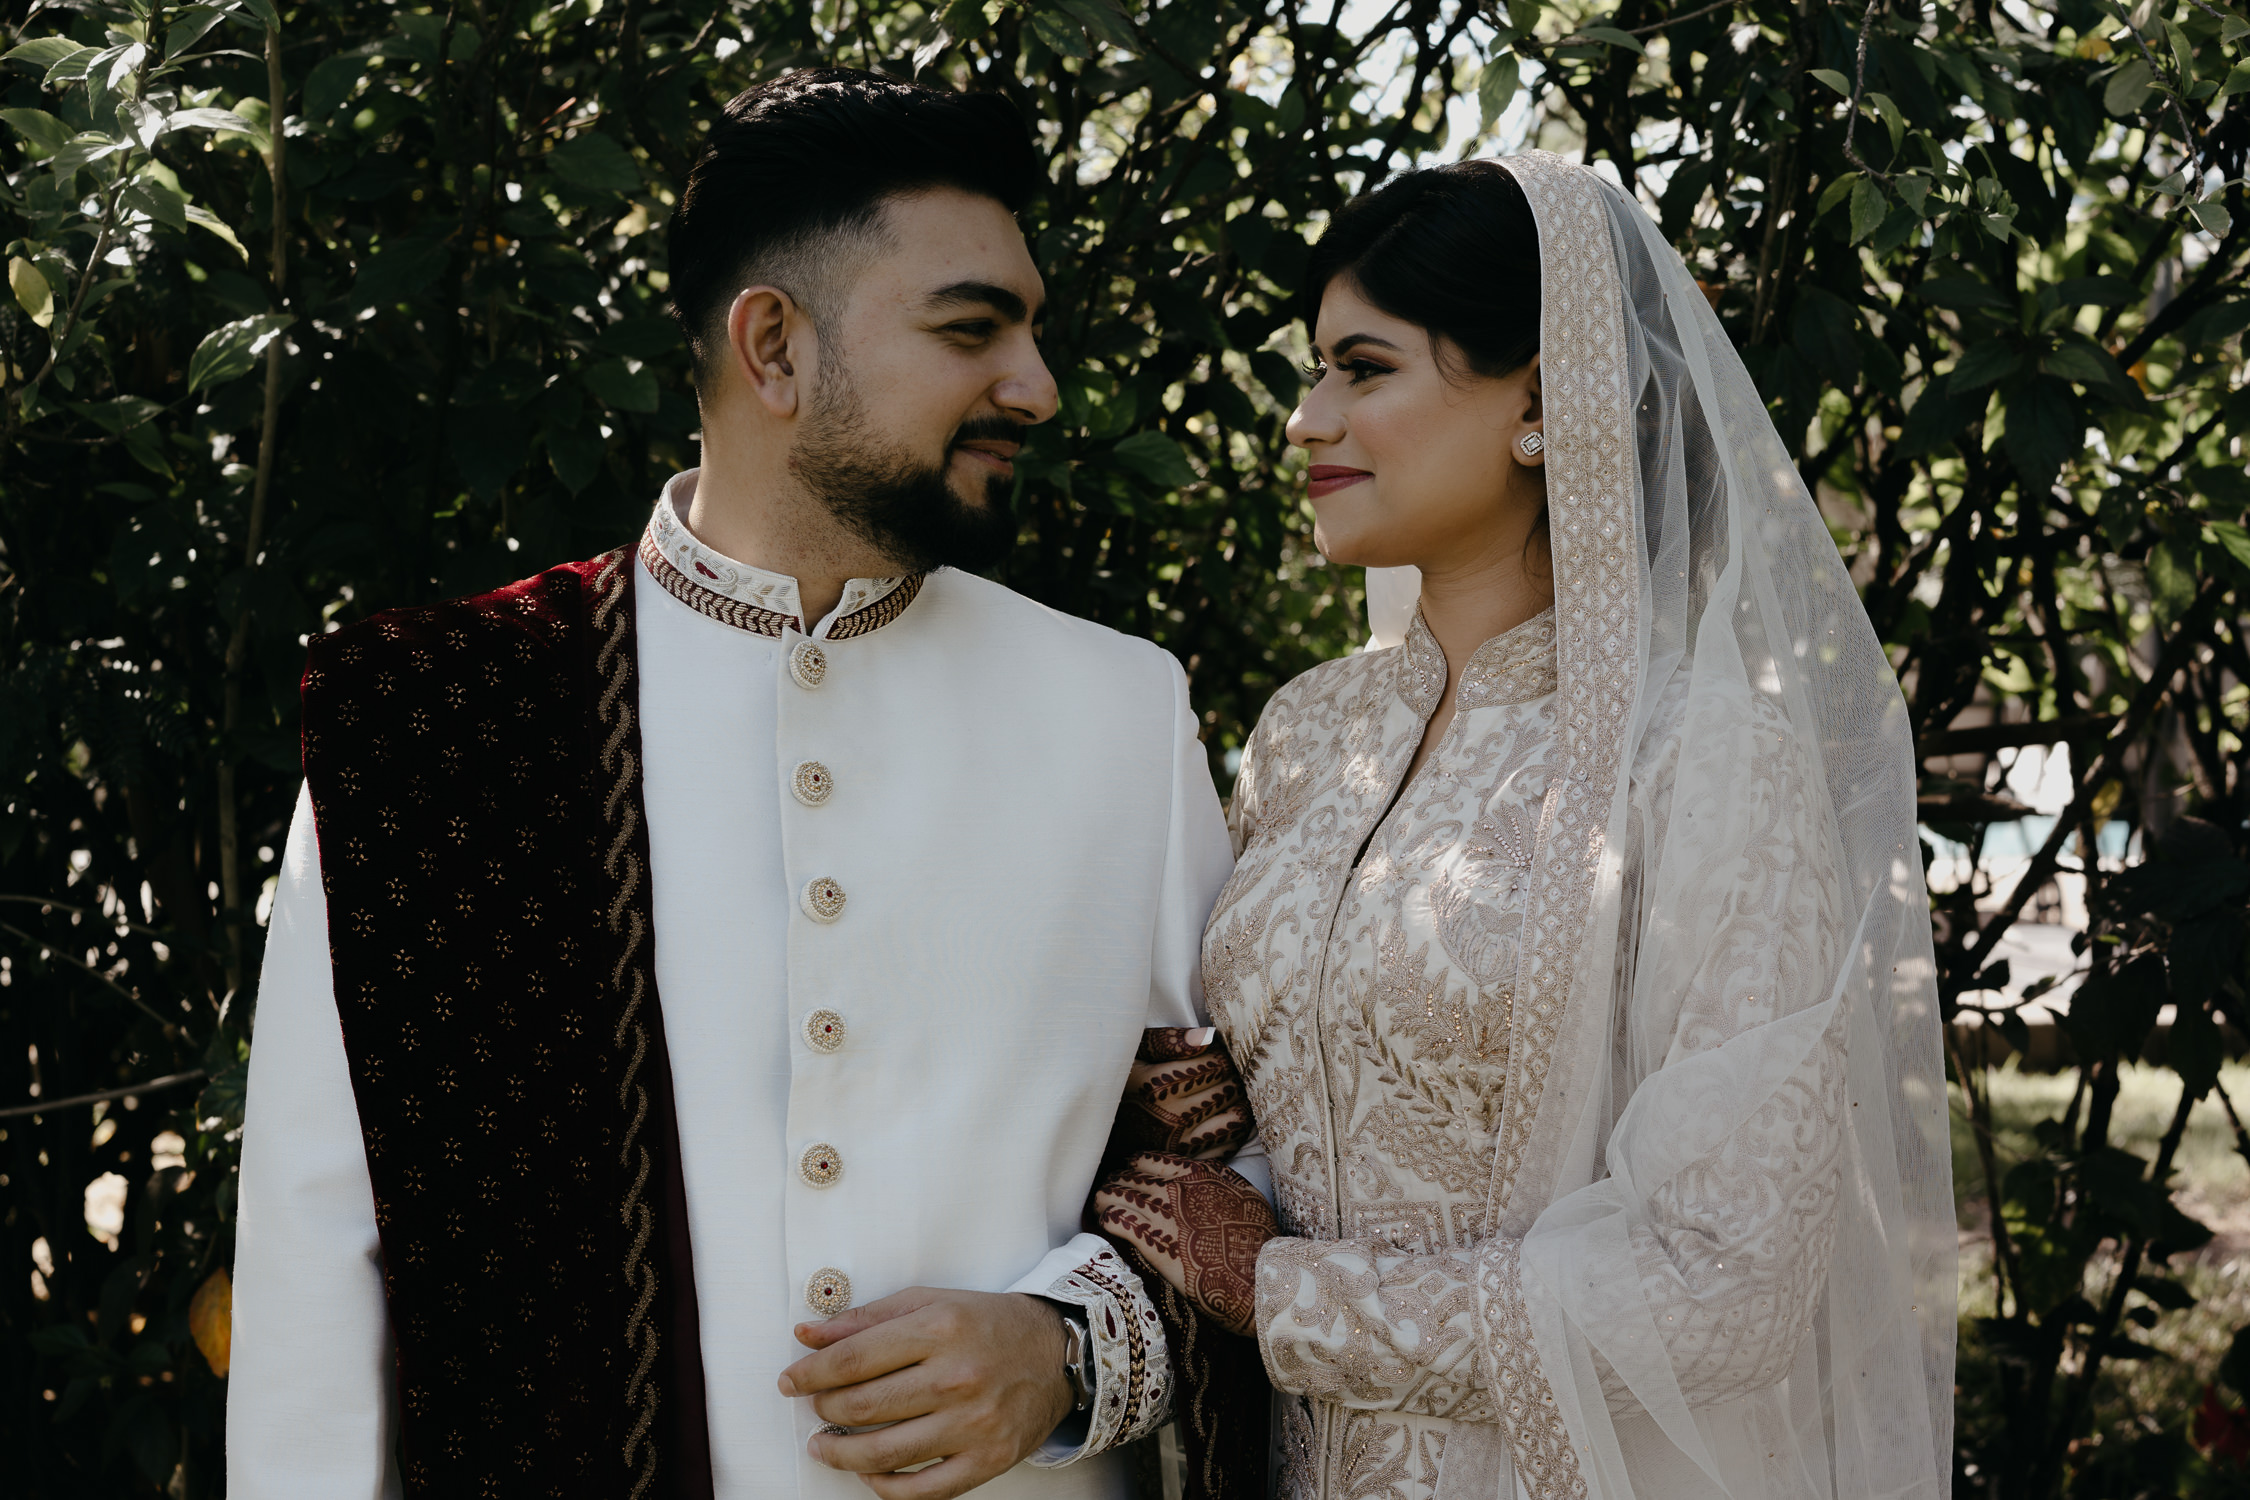 couple on indian wedding day portrait photography